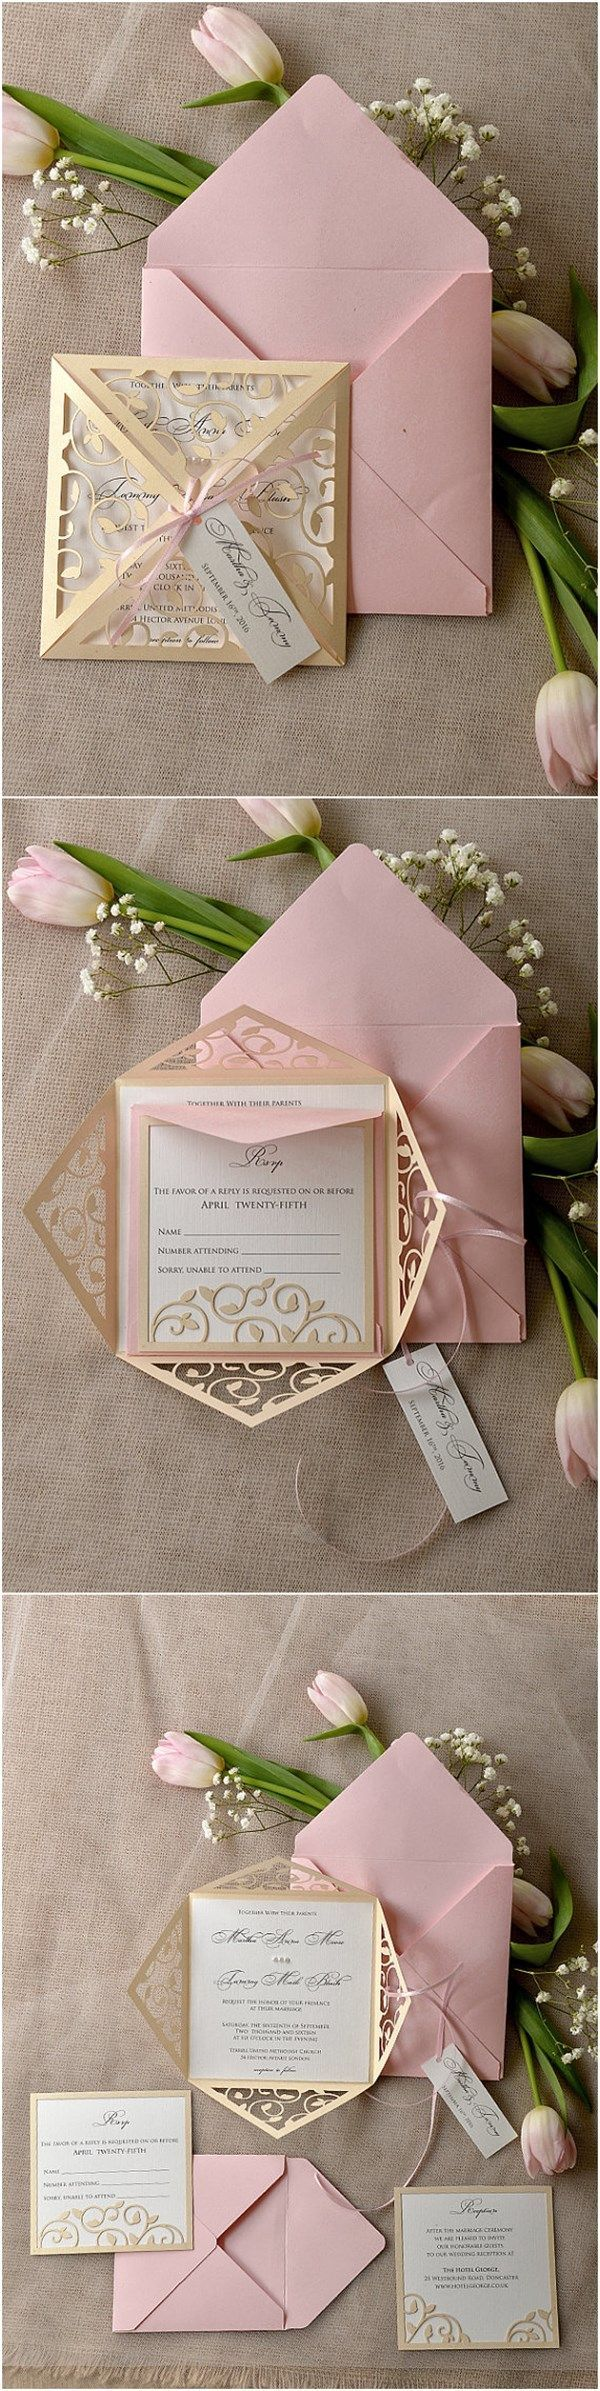 65 Best Blush And Dusty Rose Wedding Images On Pinterest Dusty